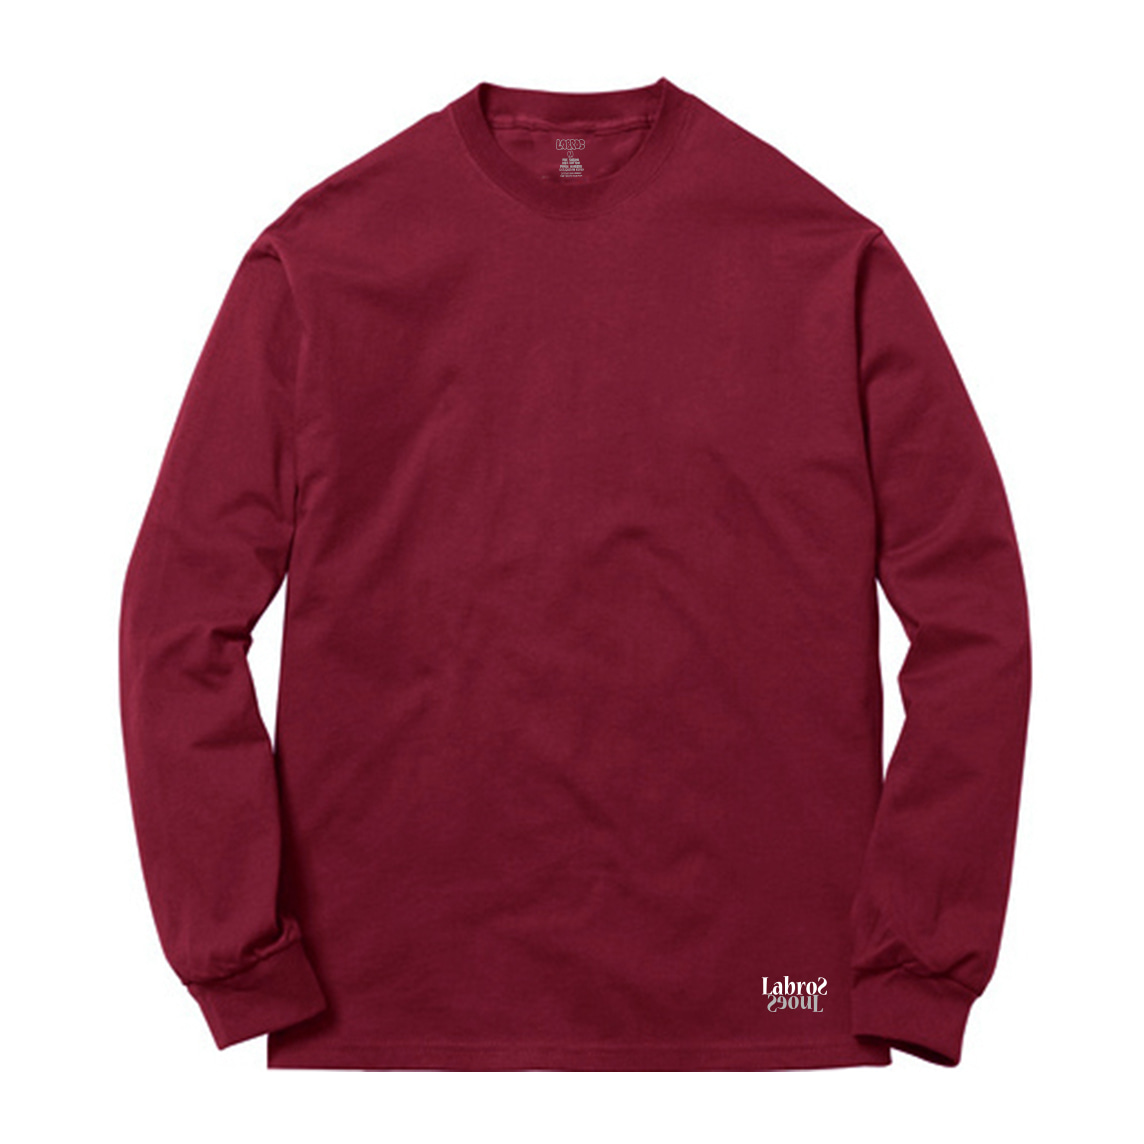 TGL Two-tone L/S Tee (Burgundy)